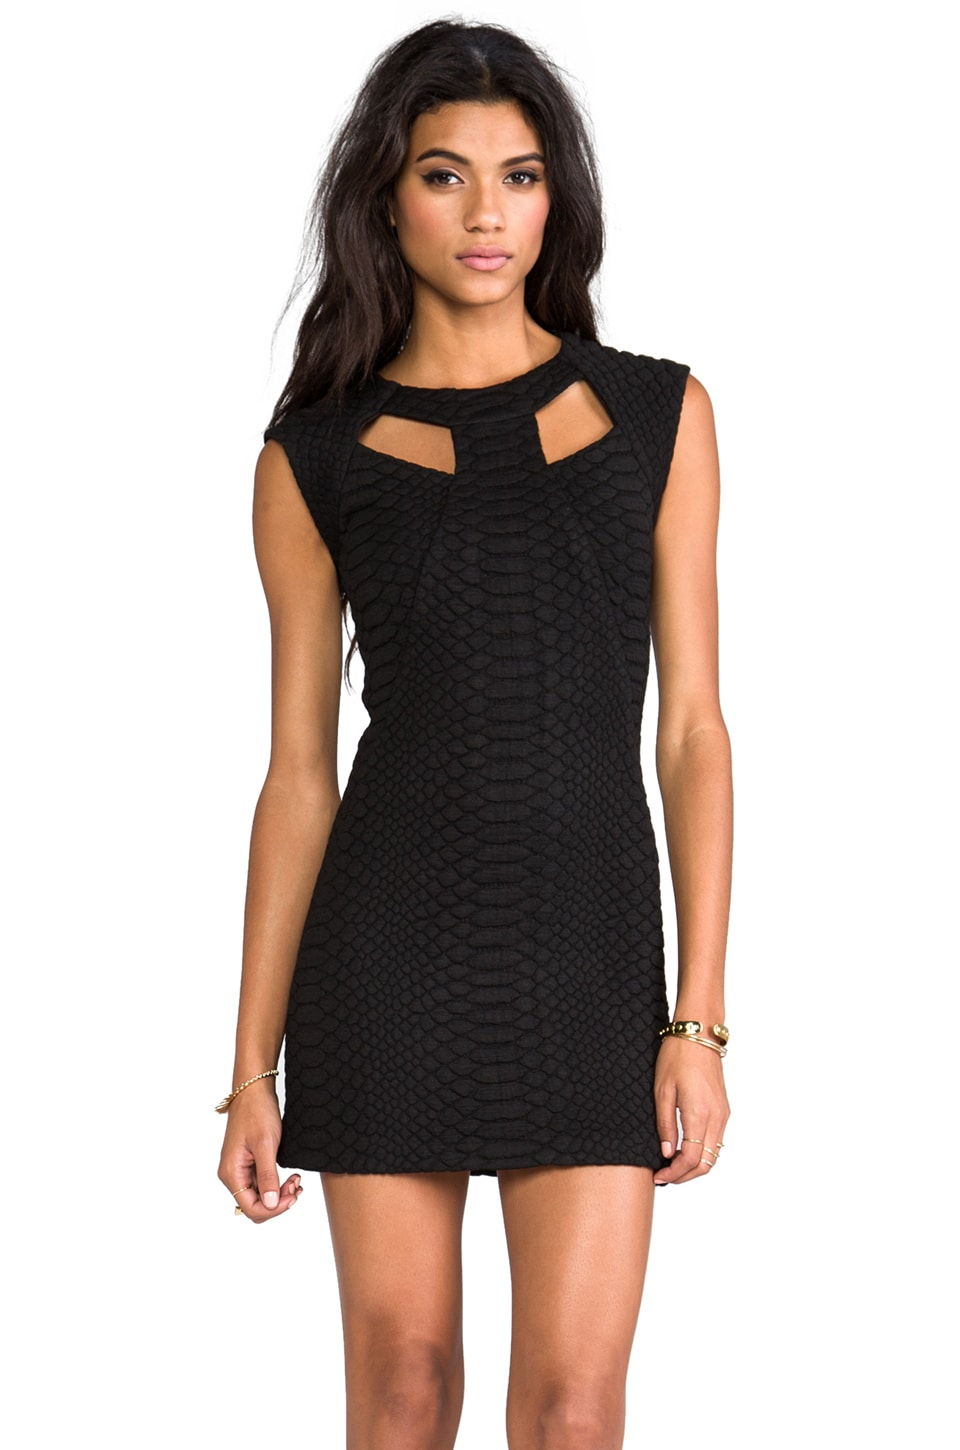 Alexis Penelope Black Structured Dress With Front Cut Outs in Black Python